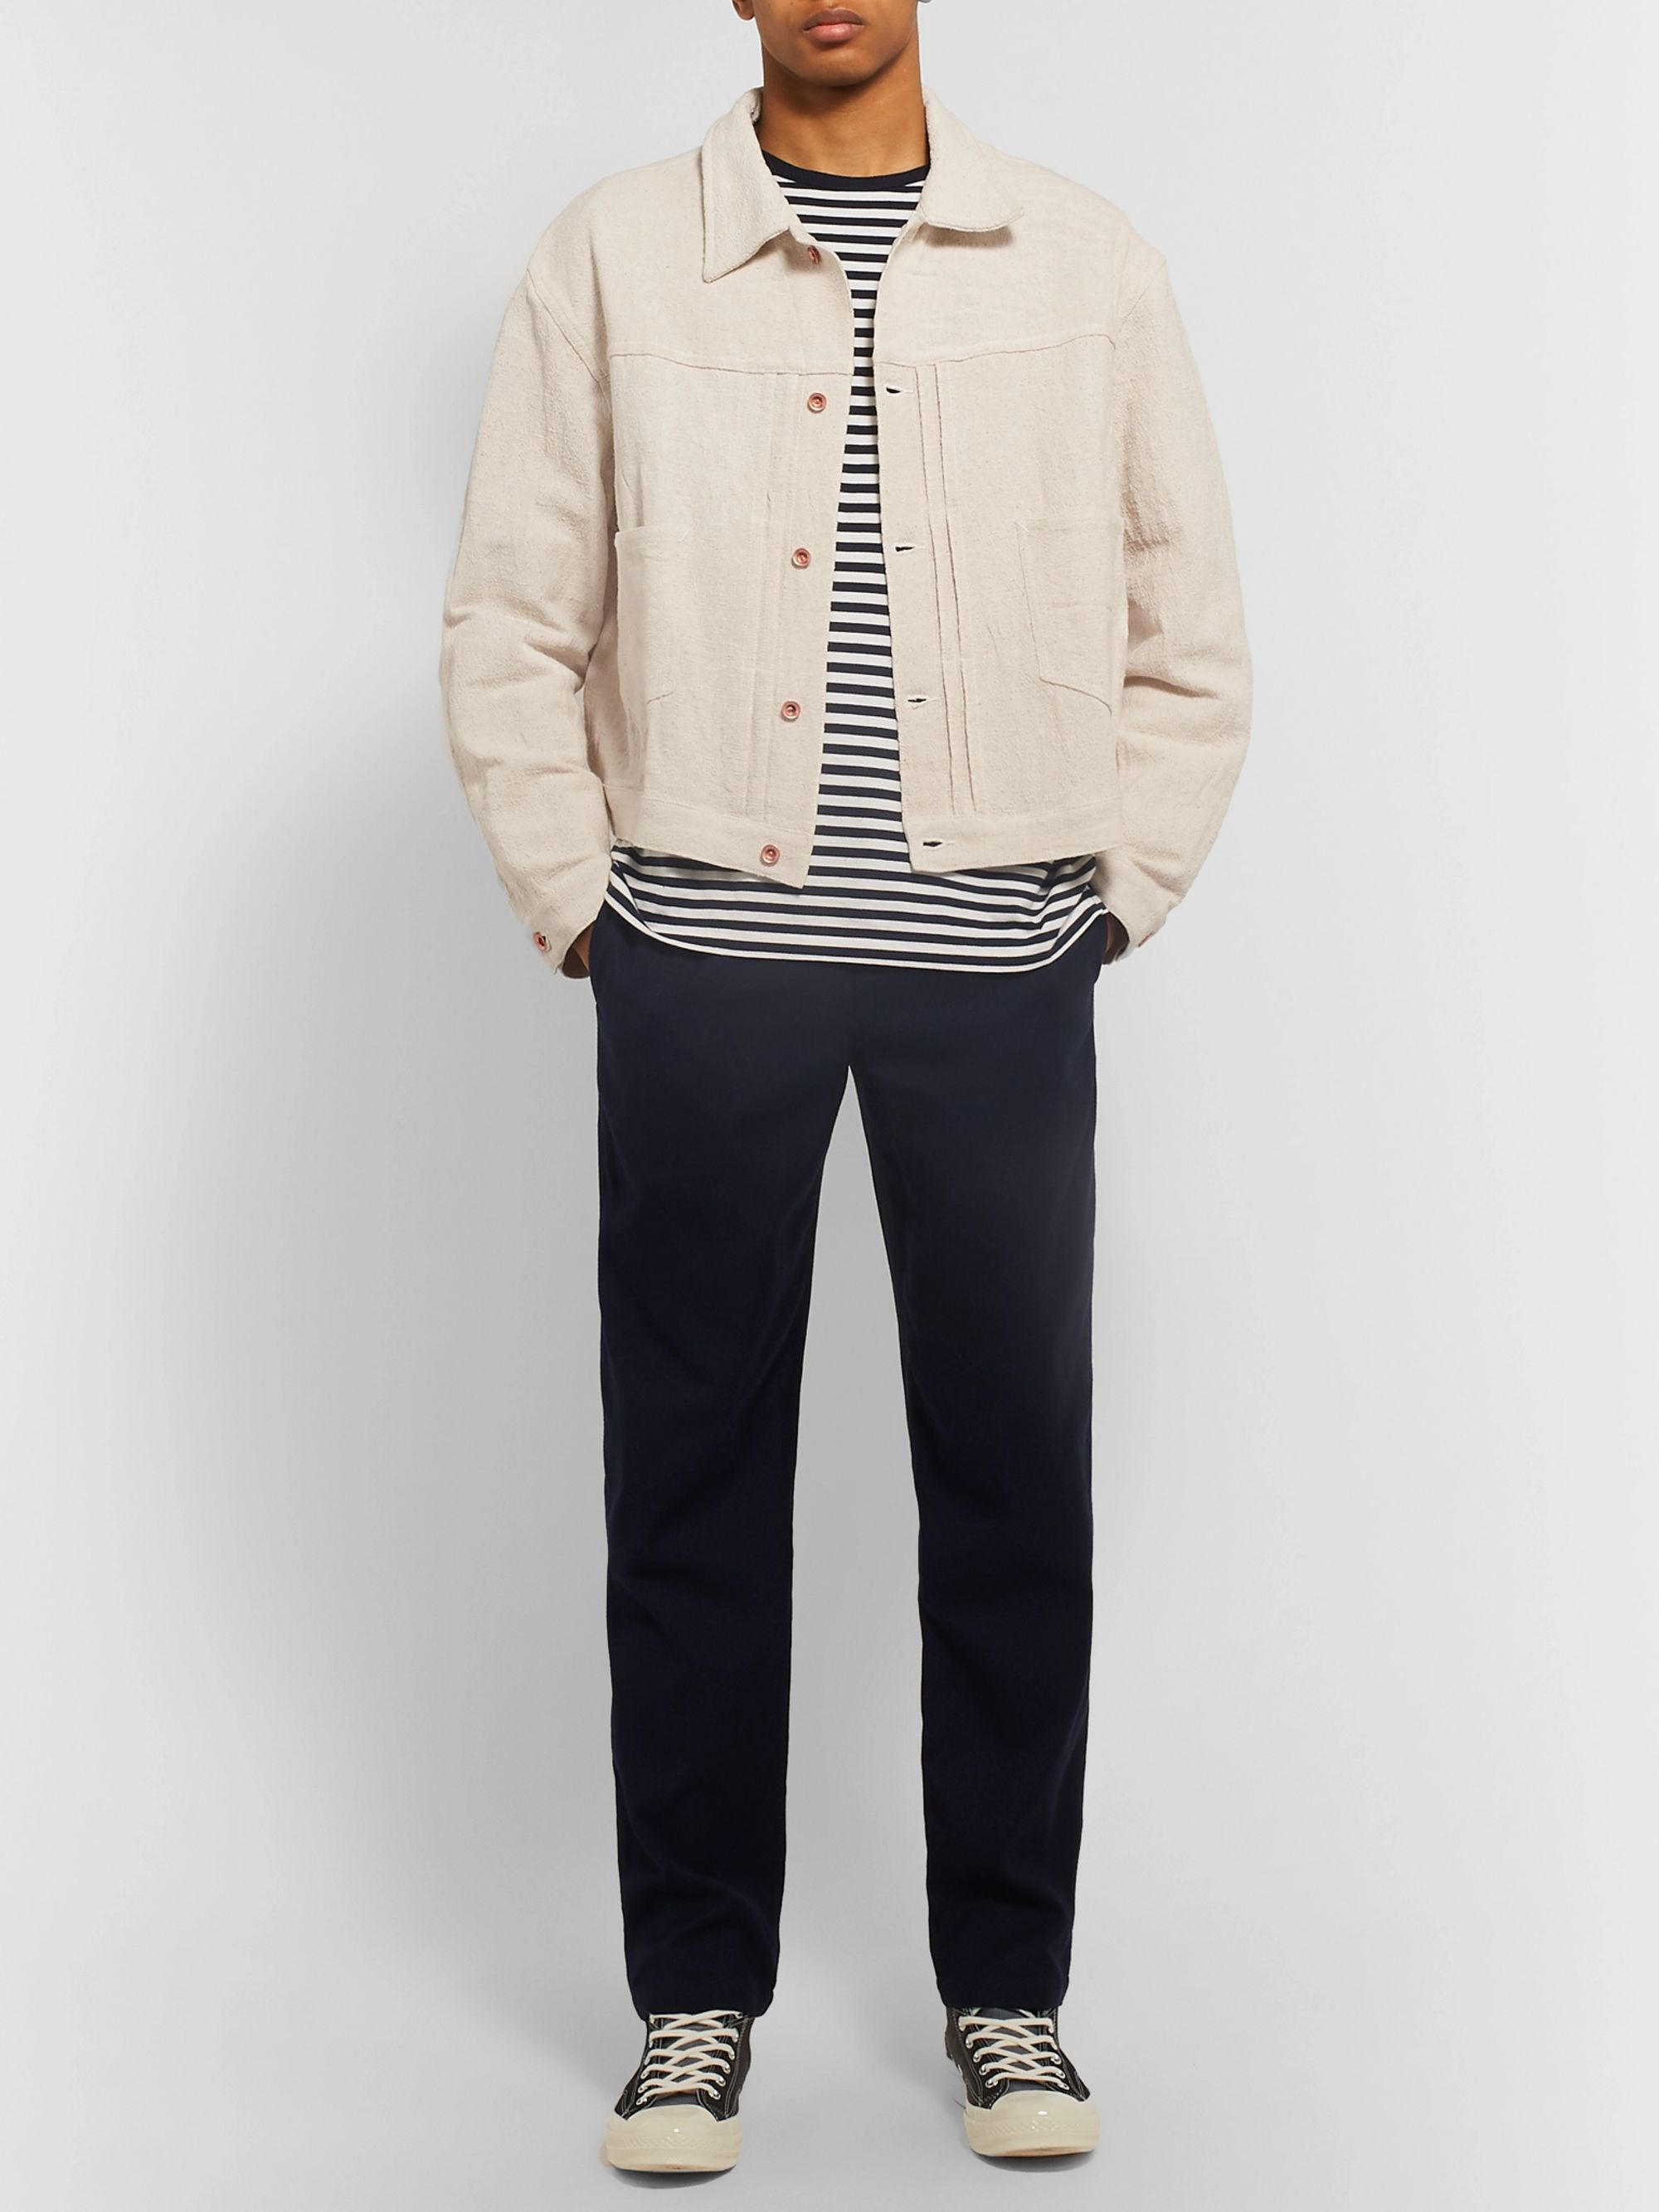 Story Mfg. Organic Cotton Jacket